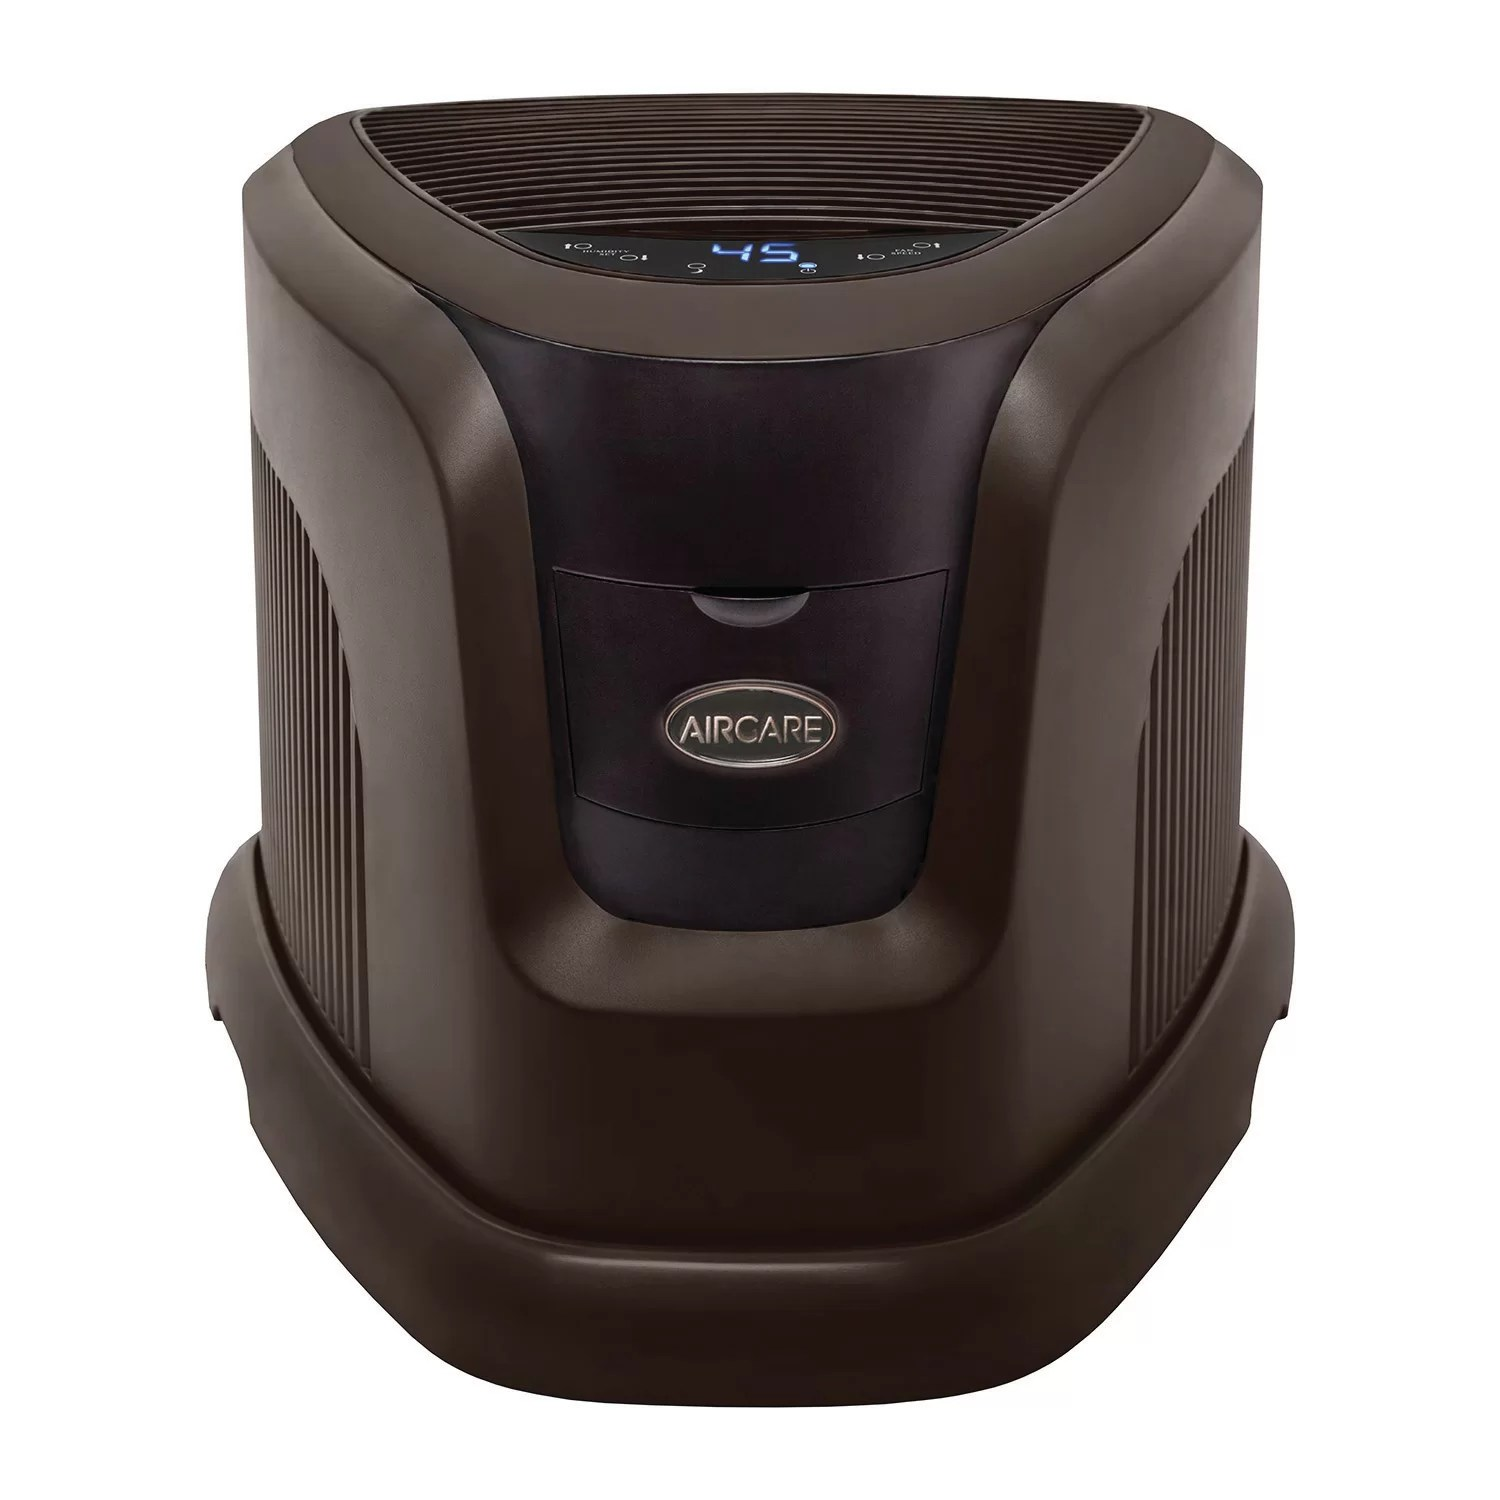 Home Humidifiers Aircare 3 5 Gal Evaporative Humidifier And Reviews Wayfair Ca